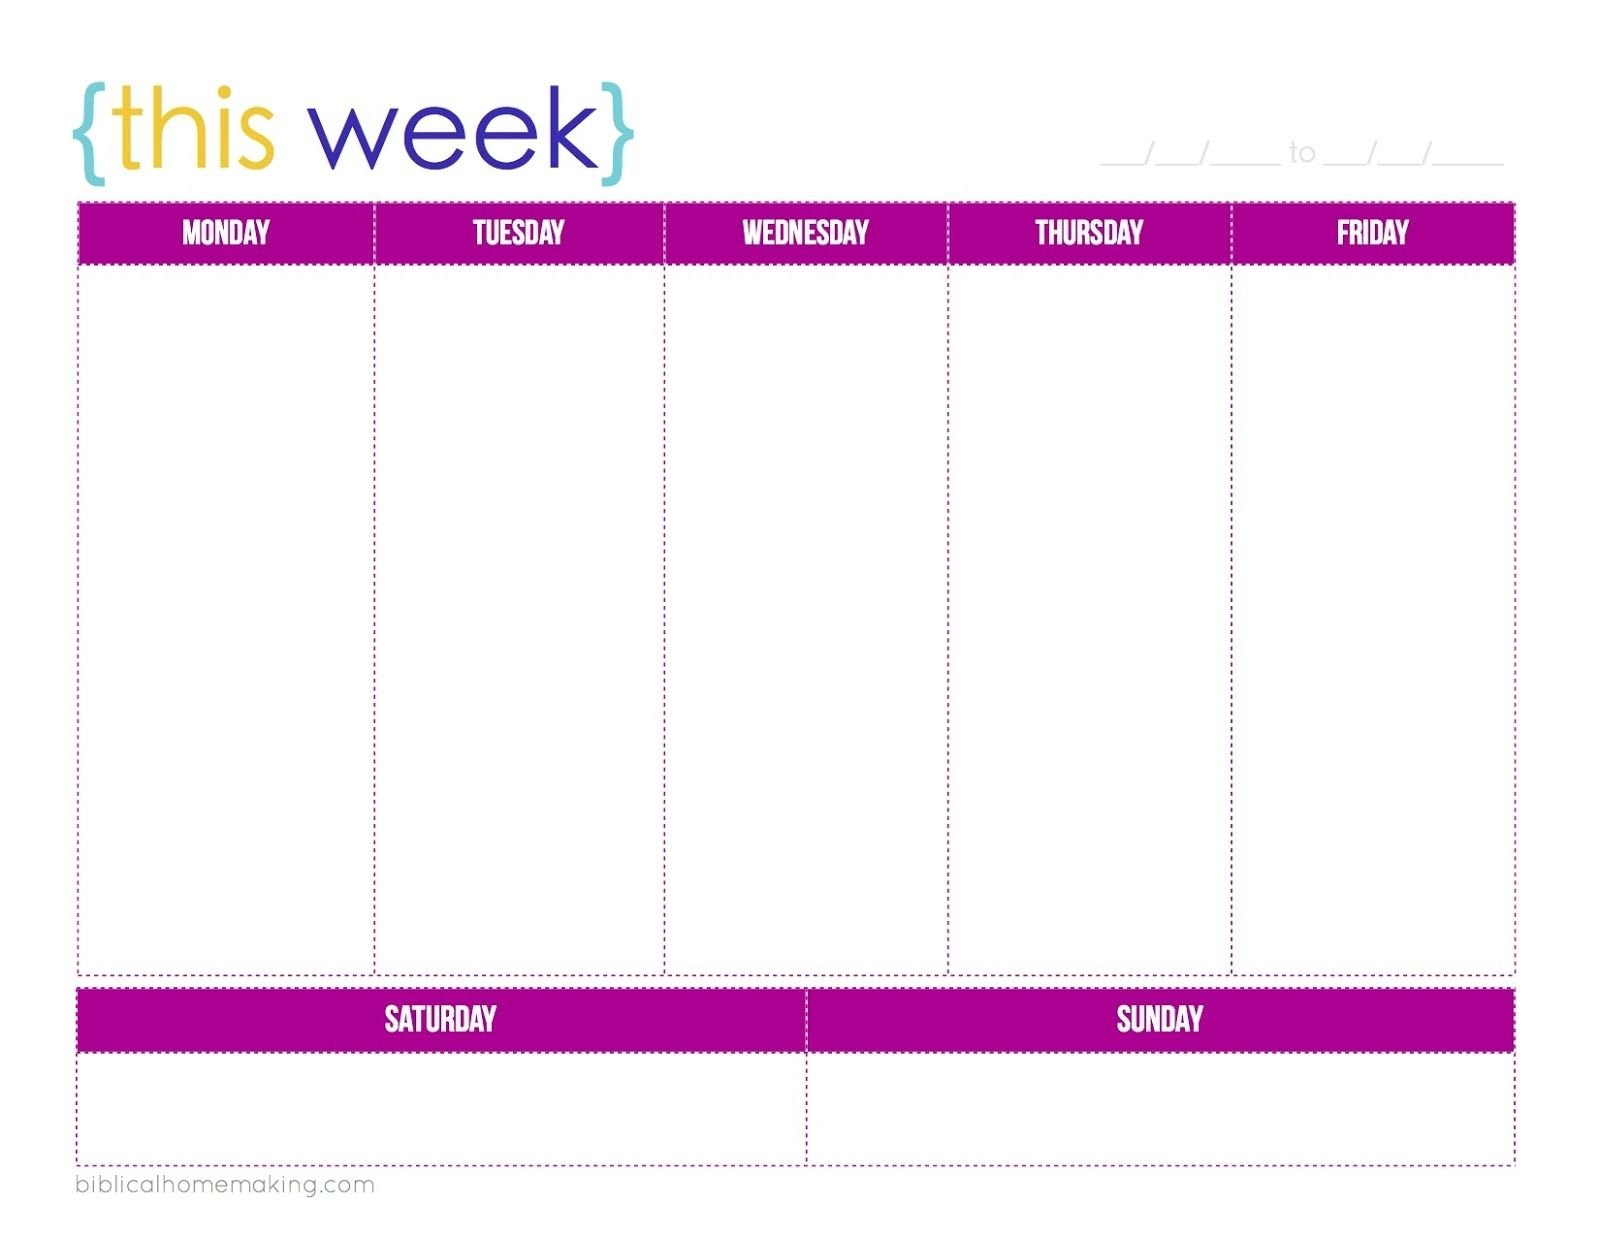 This Week A Free Weekly Planner Printable Biblical Printable One Week Calendar Free